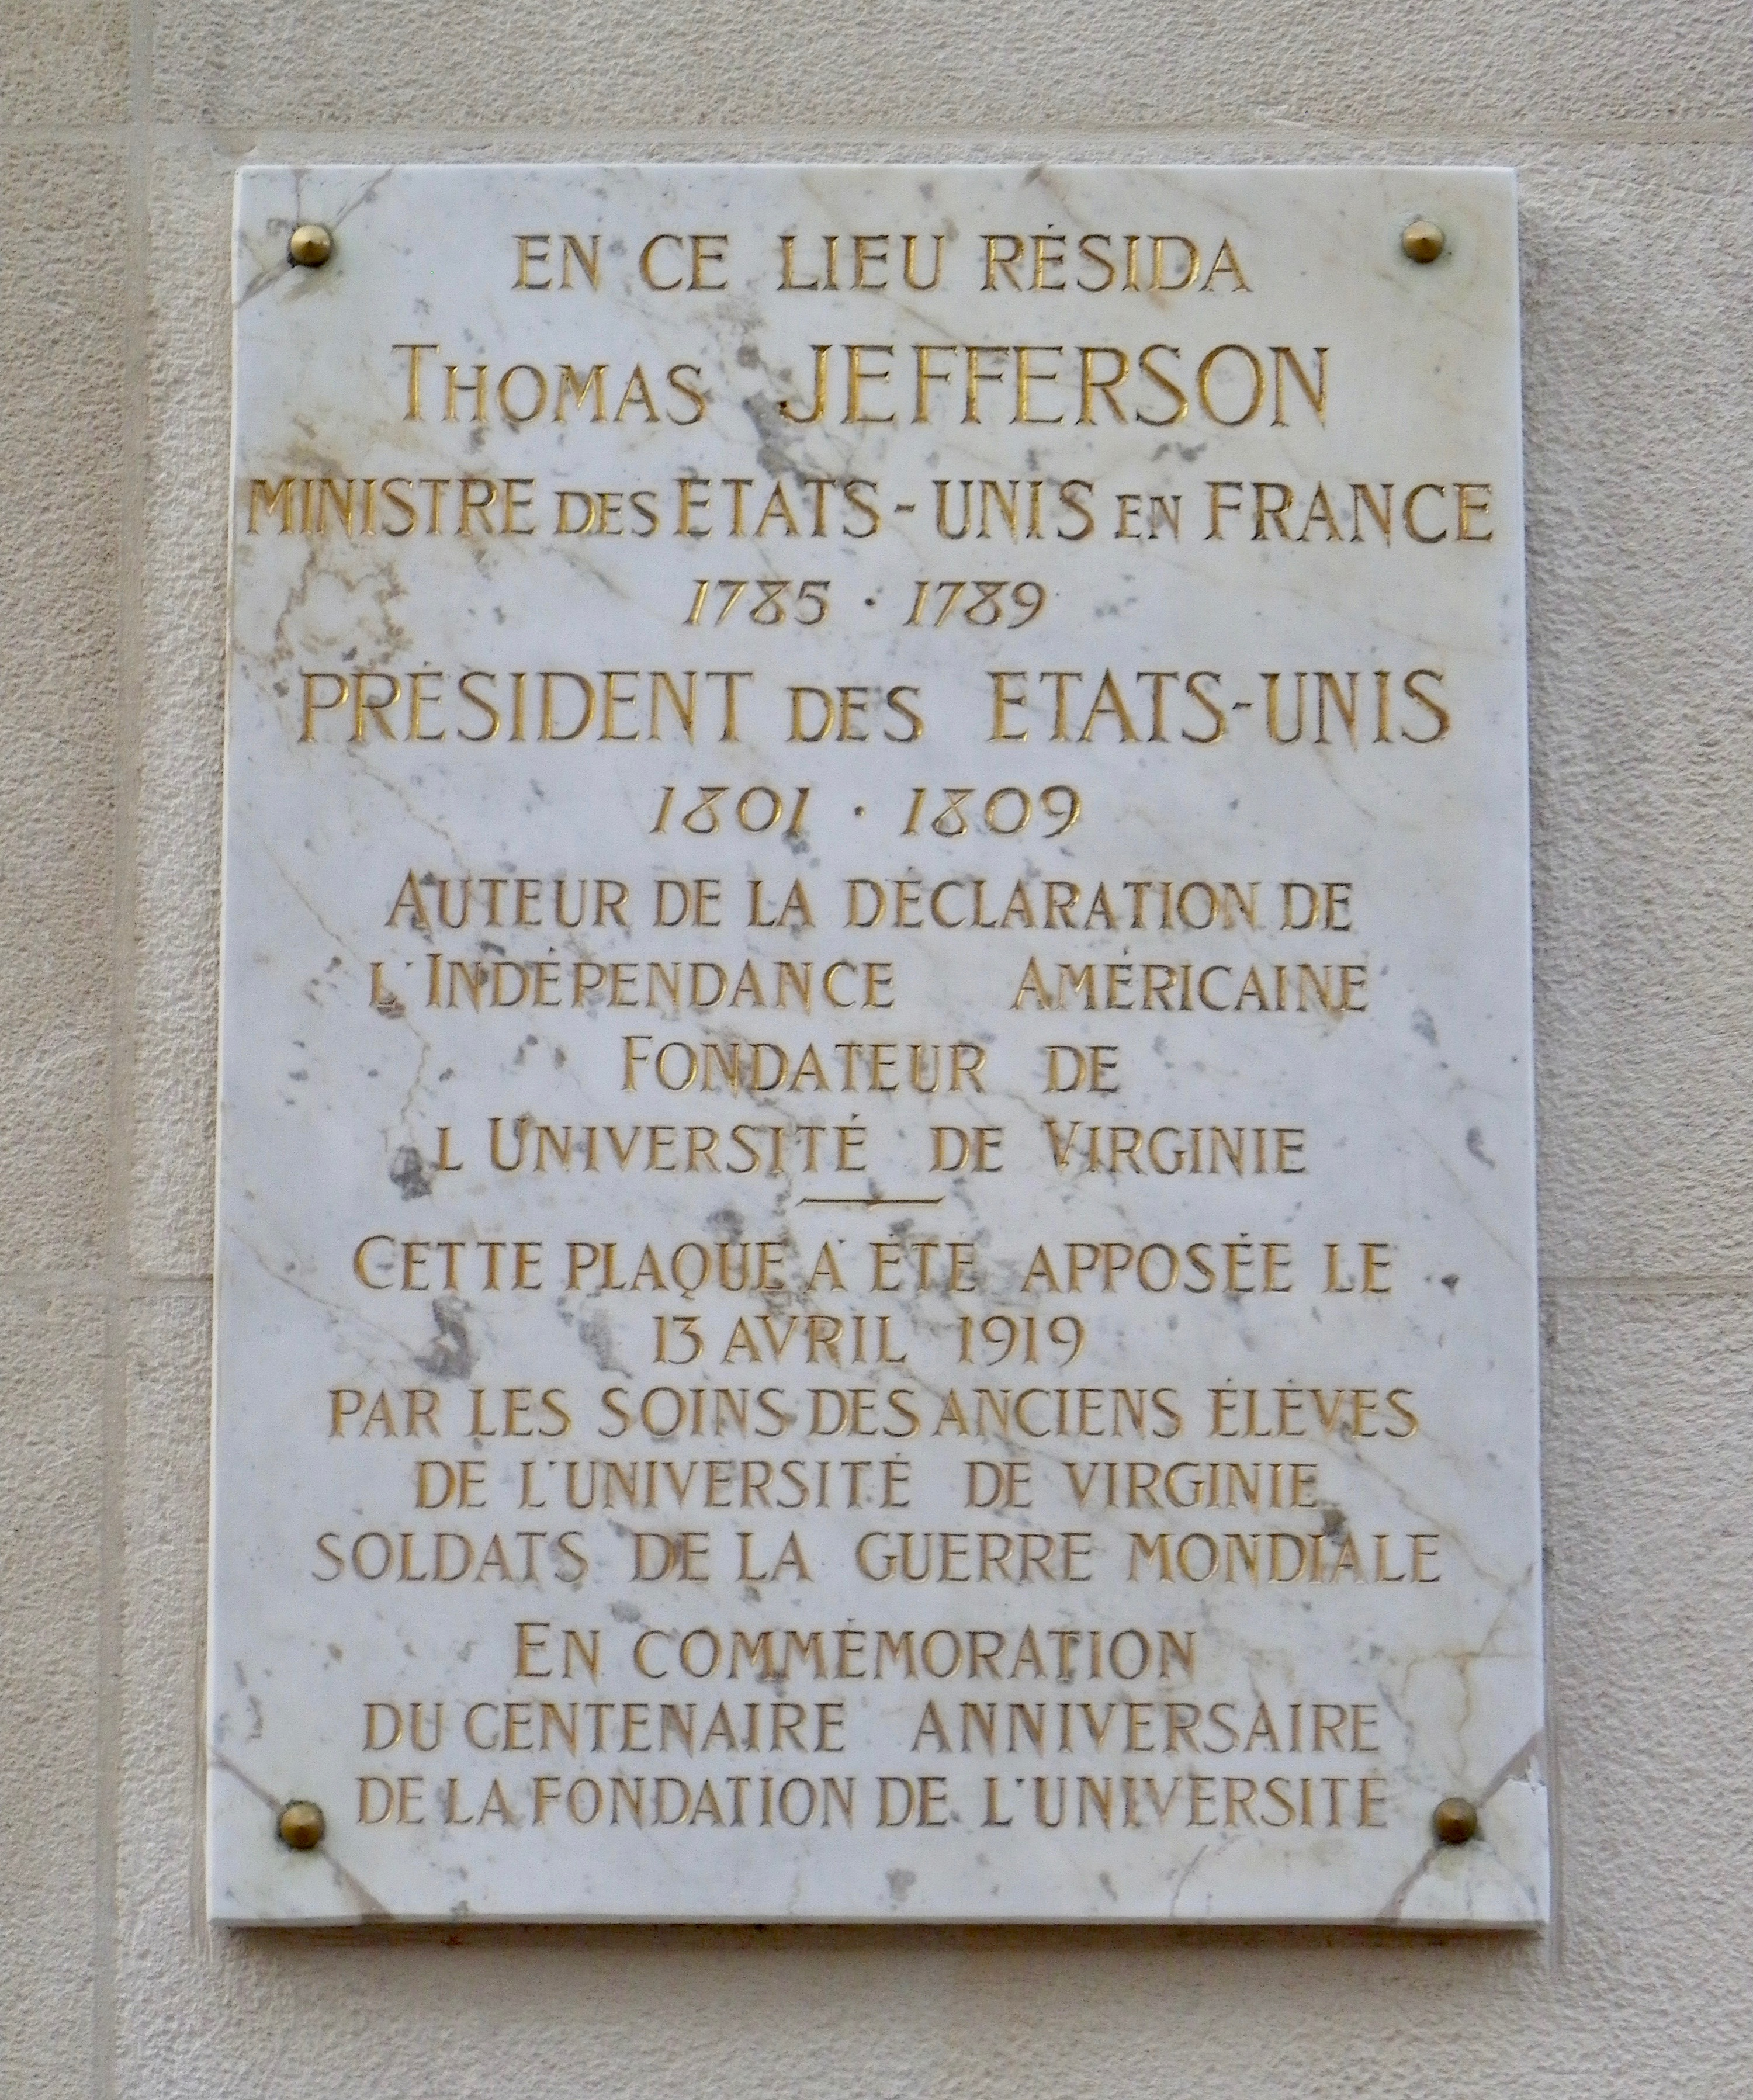 http://upload.wikimedia.org/wikipedia/commons/4/4c/Plaque_Thomas_Jefferson_au_92_avenue_des_Champs-Elysées_à_Paris.JPG